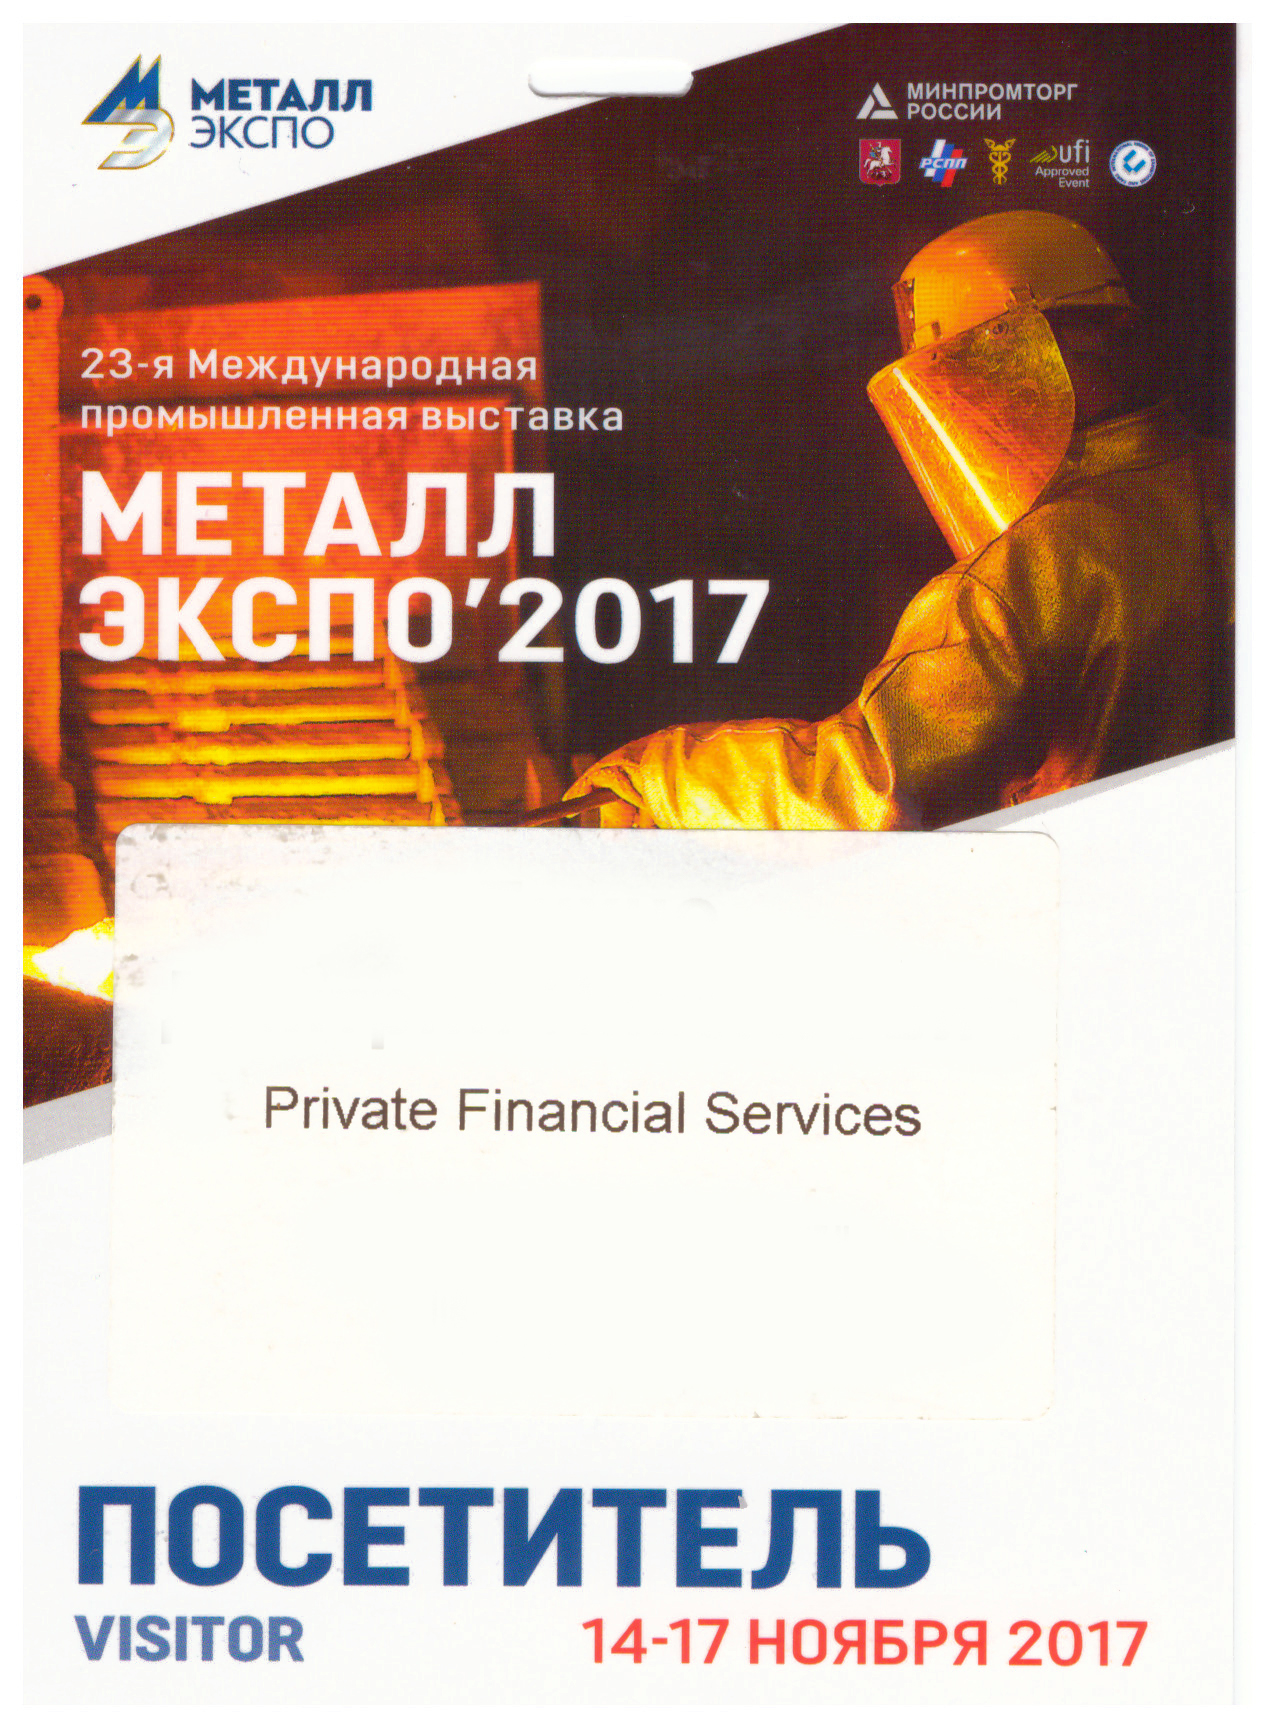 Participation in Metal-Expo 2017